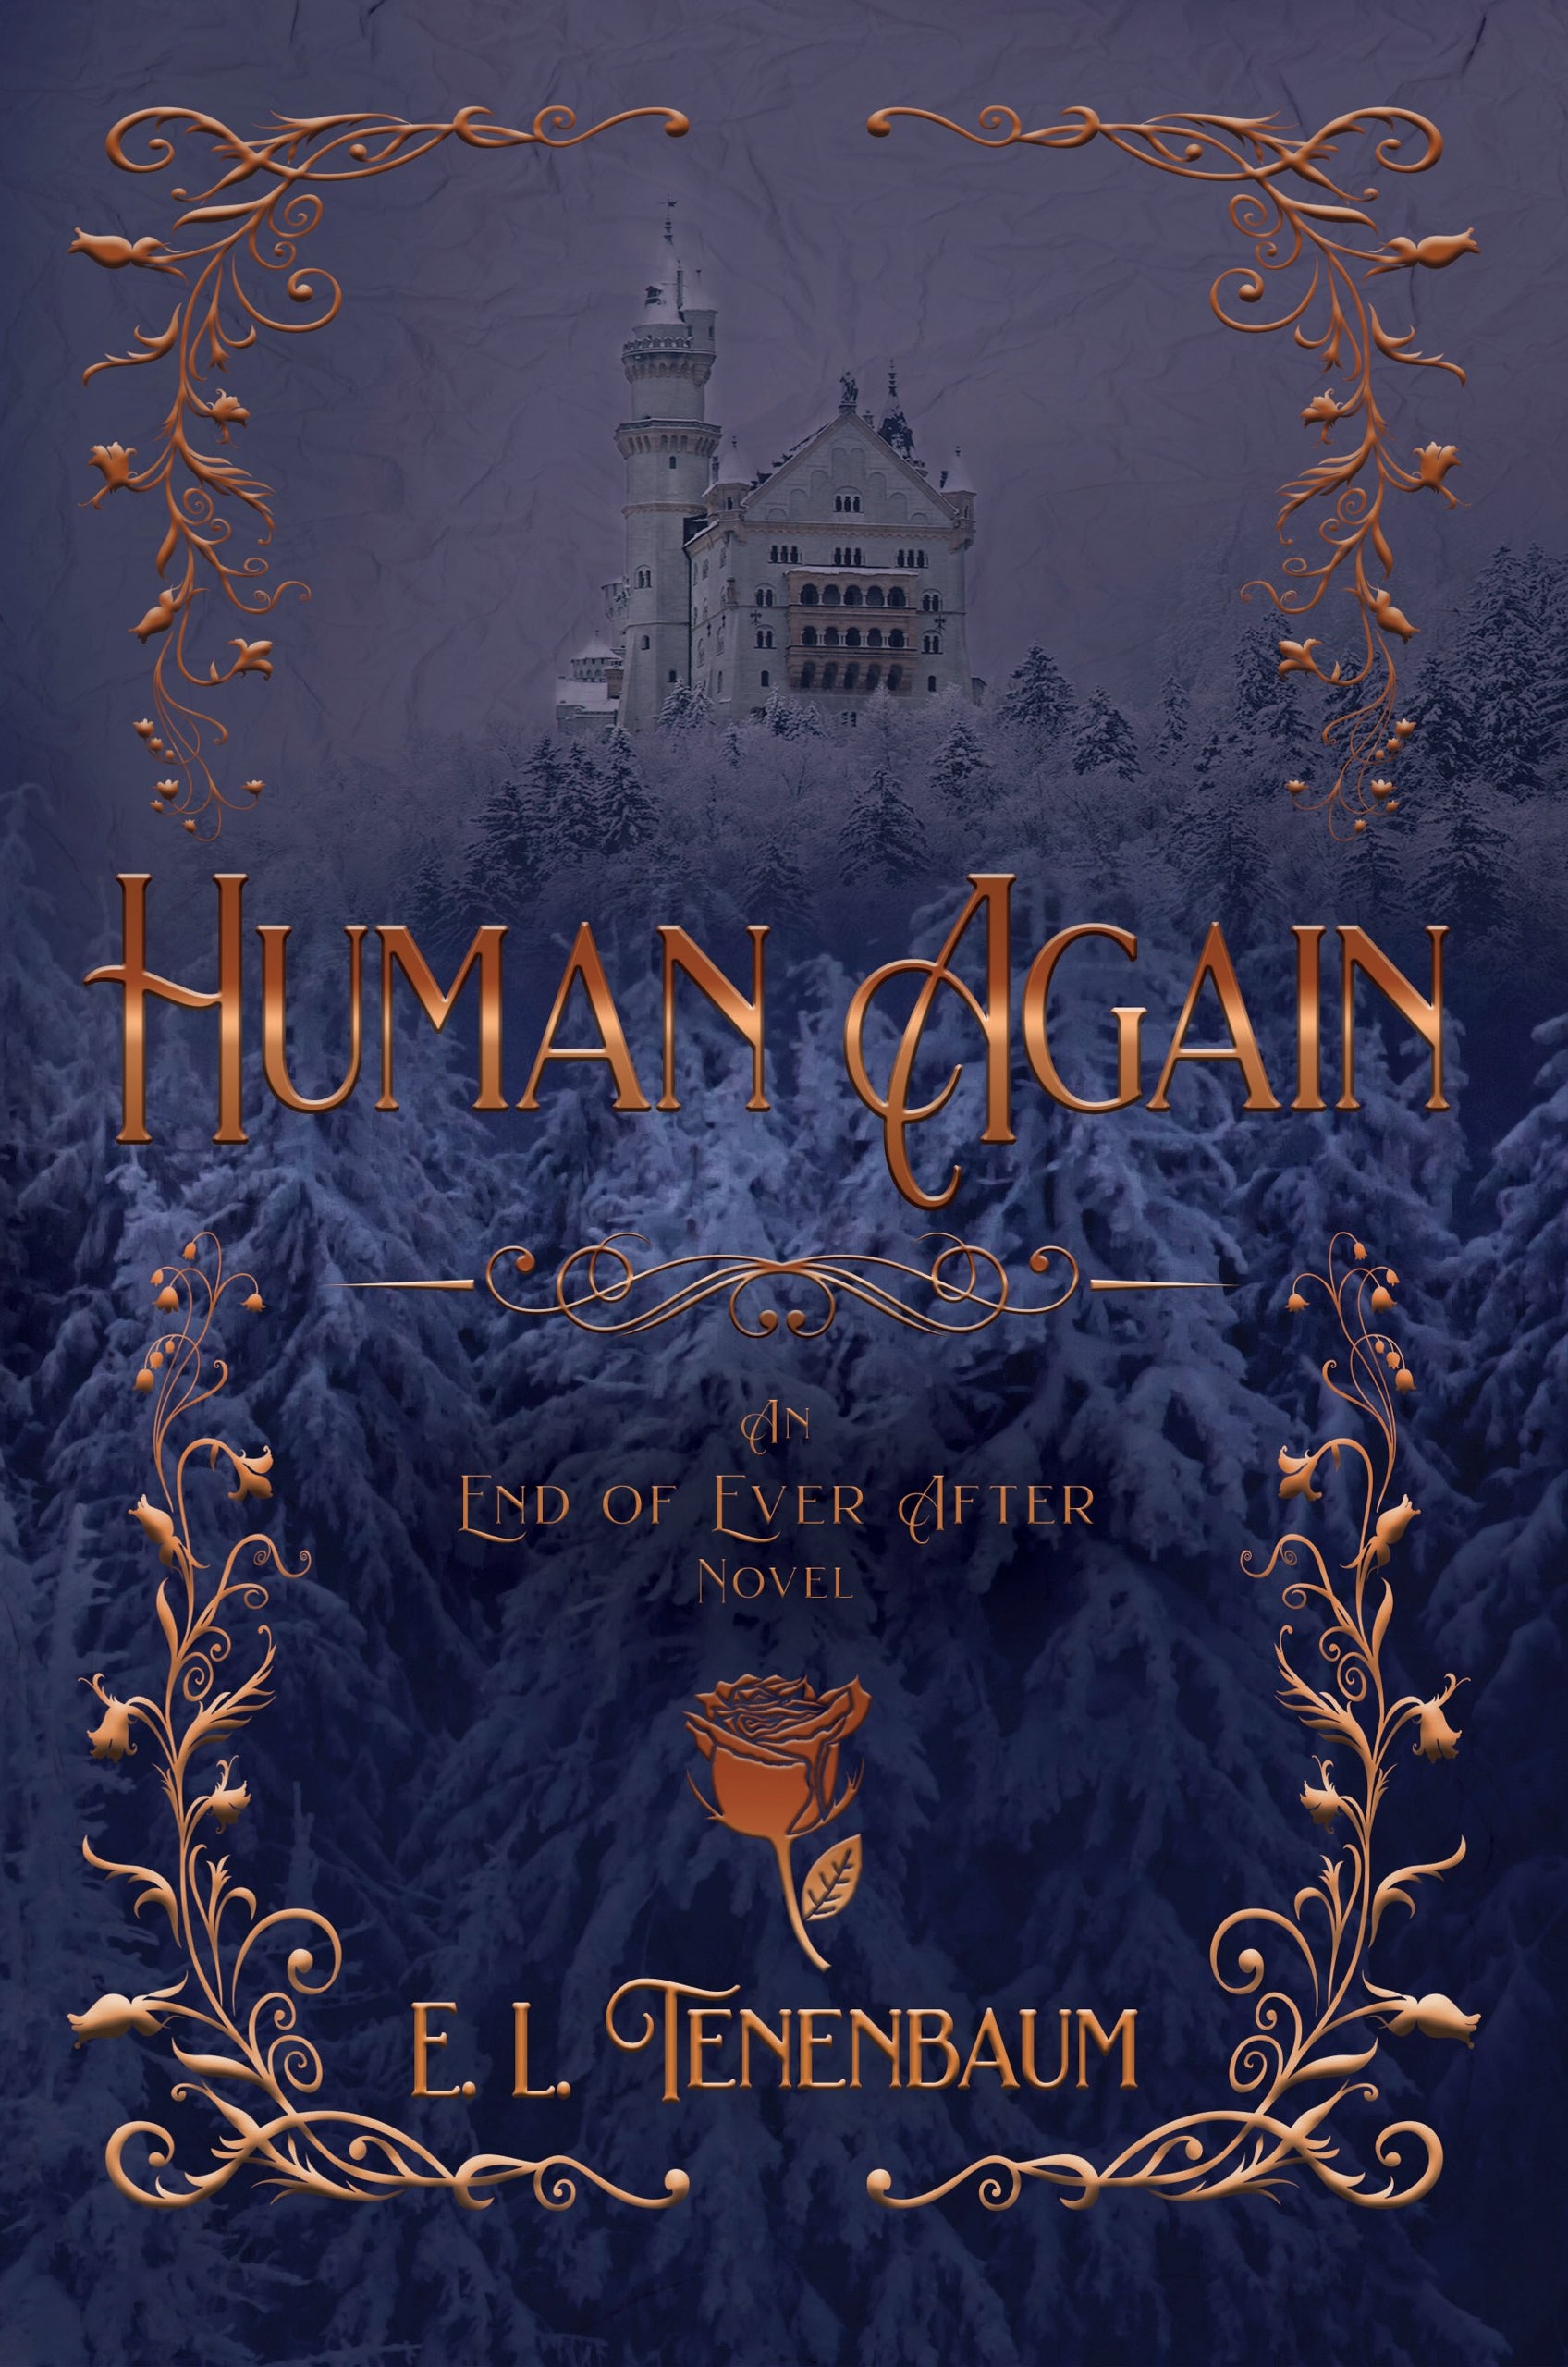 [PDF] [EPUB] Human Again: A Beauty and the Beast Retelling (End of Ever After, Book #4) Download by E.L. Tenenbaum